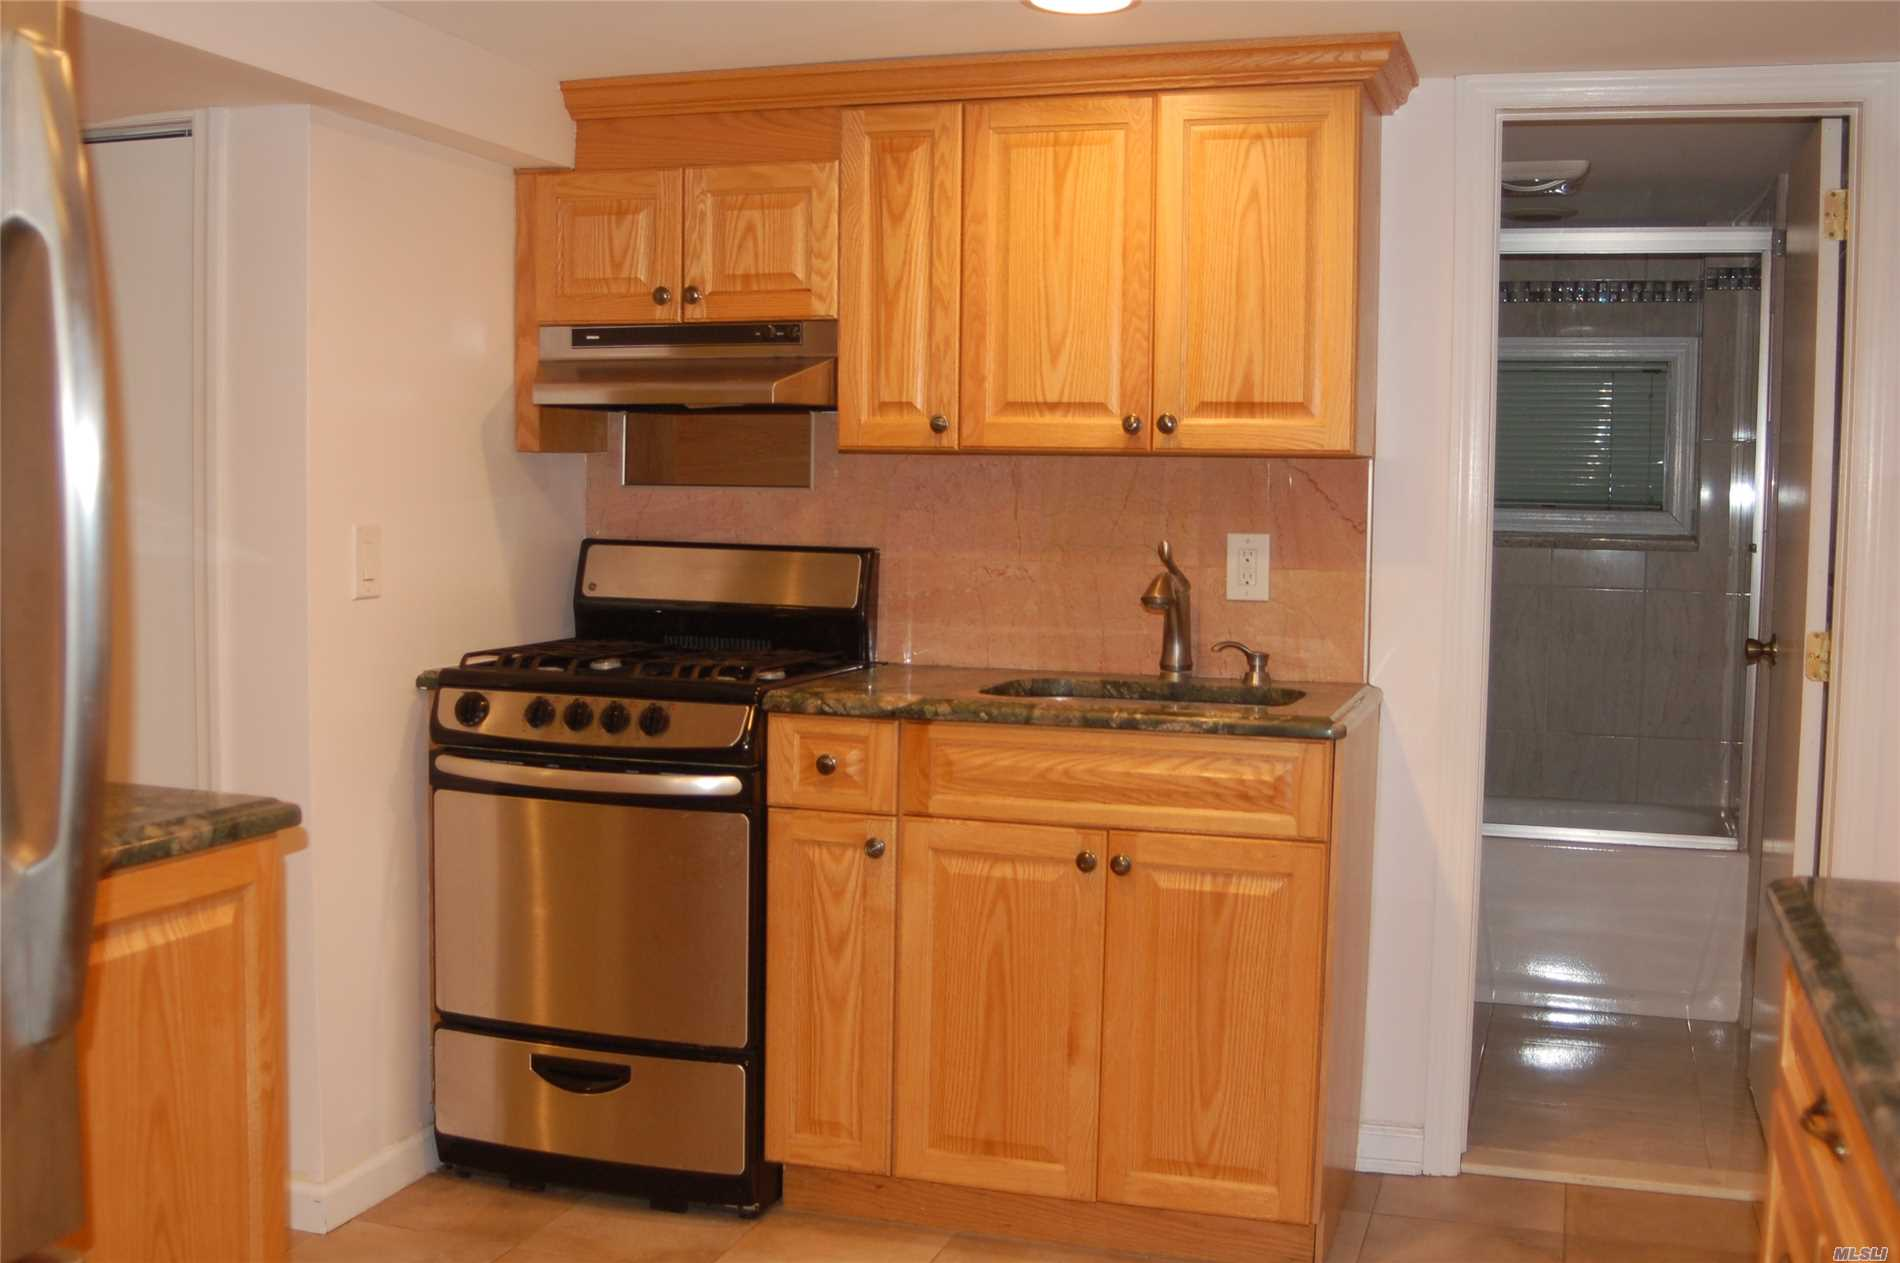 Beautiful Bright One Bedroom 5 Minutes From The Beach. Lirr 40 Minutes To The City. Large Living Room/Hard Wood Floors, Kitchen W/Stainless Steal Appliances, Granite Counters & Great Cabinet Space. Dining Area, Bedroom, Full Bath. Use Of Front Yard. Heat Included With Separate Thermostat. Private Entrance. Shell Creek Park Is Minutes Away. Come See This Barnum Island 1 Bedroom Gem.